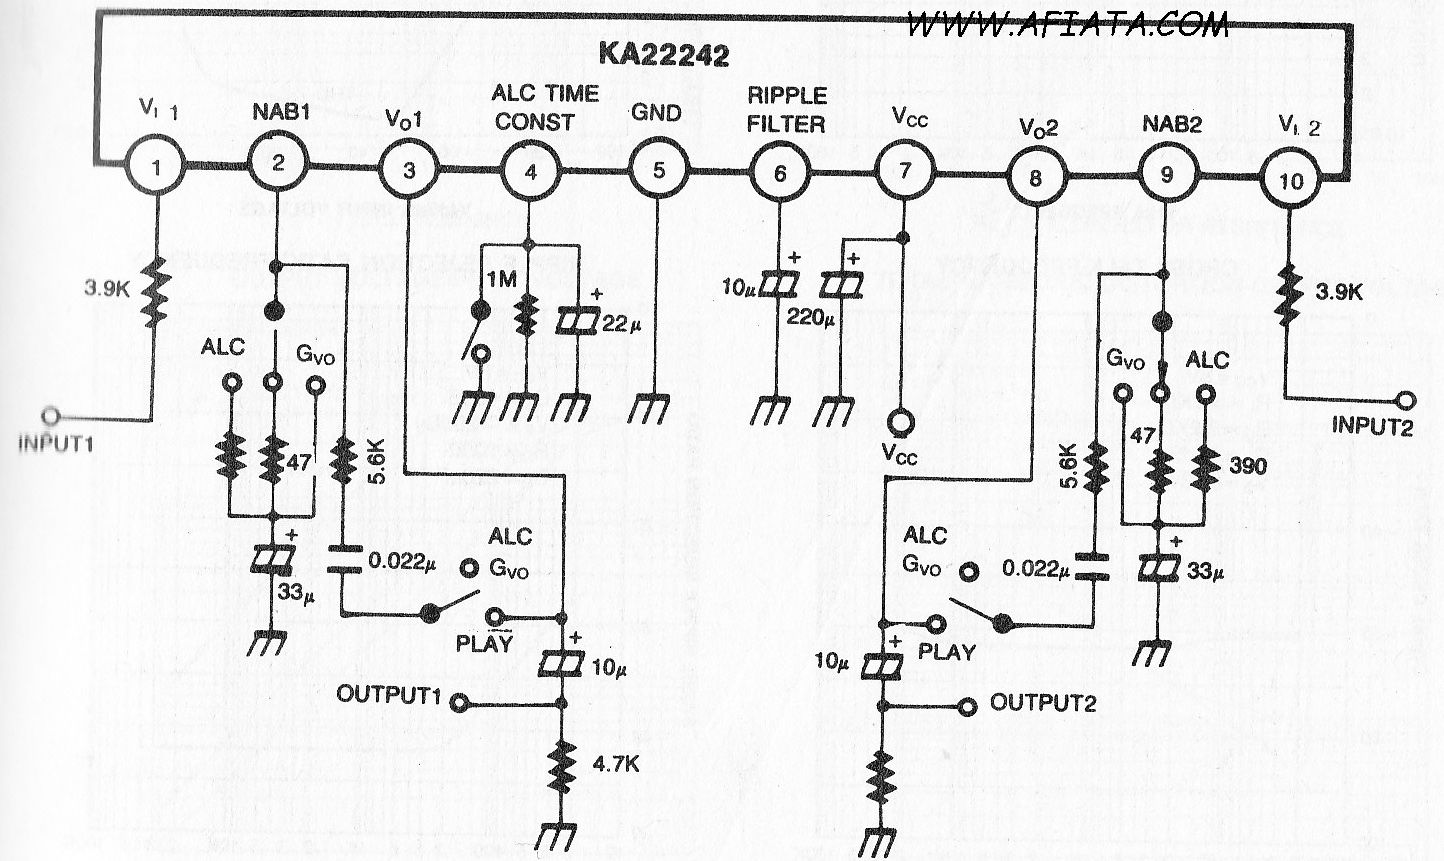 Rs232 Wiring Diagram For Surround Booster Audio Mixer Circuit Using Ka22242 In 2018